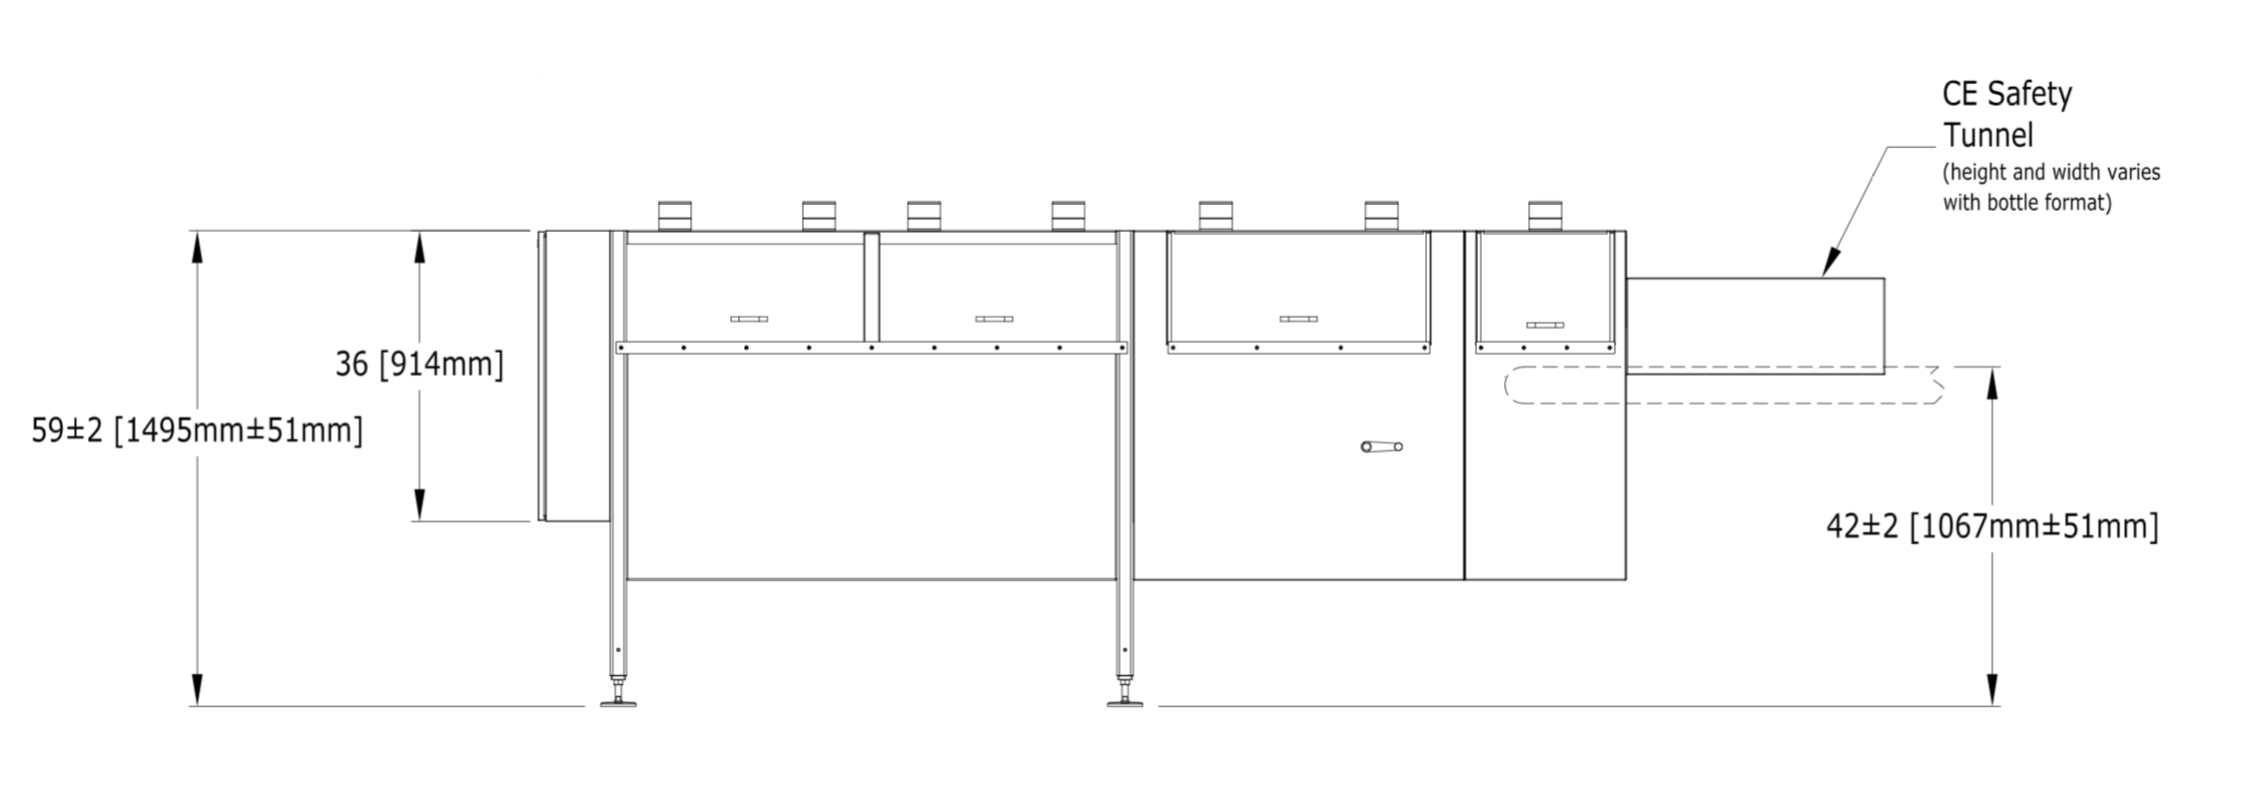 Pace M500 drawings